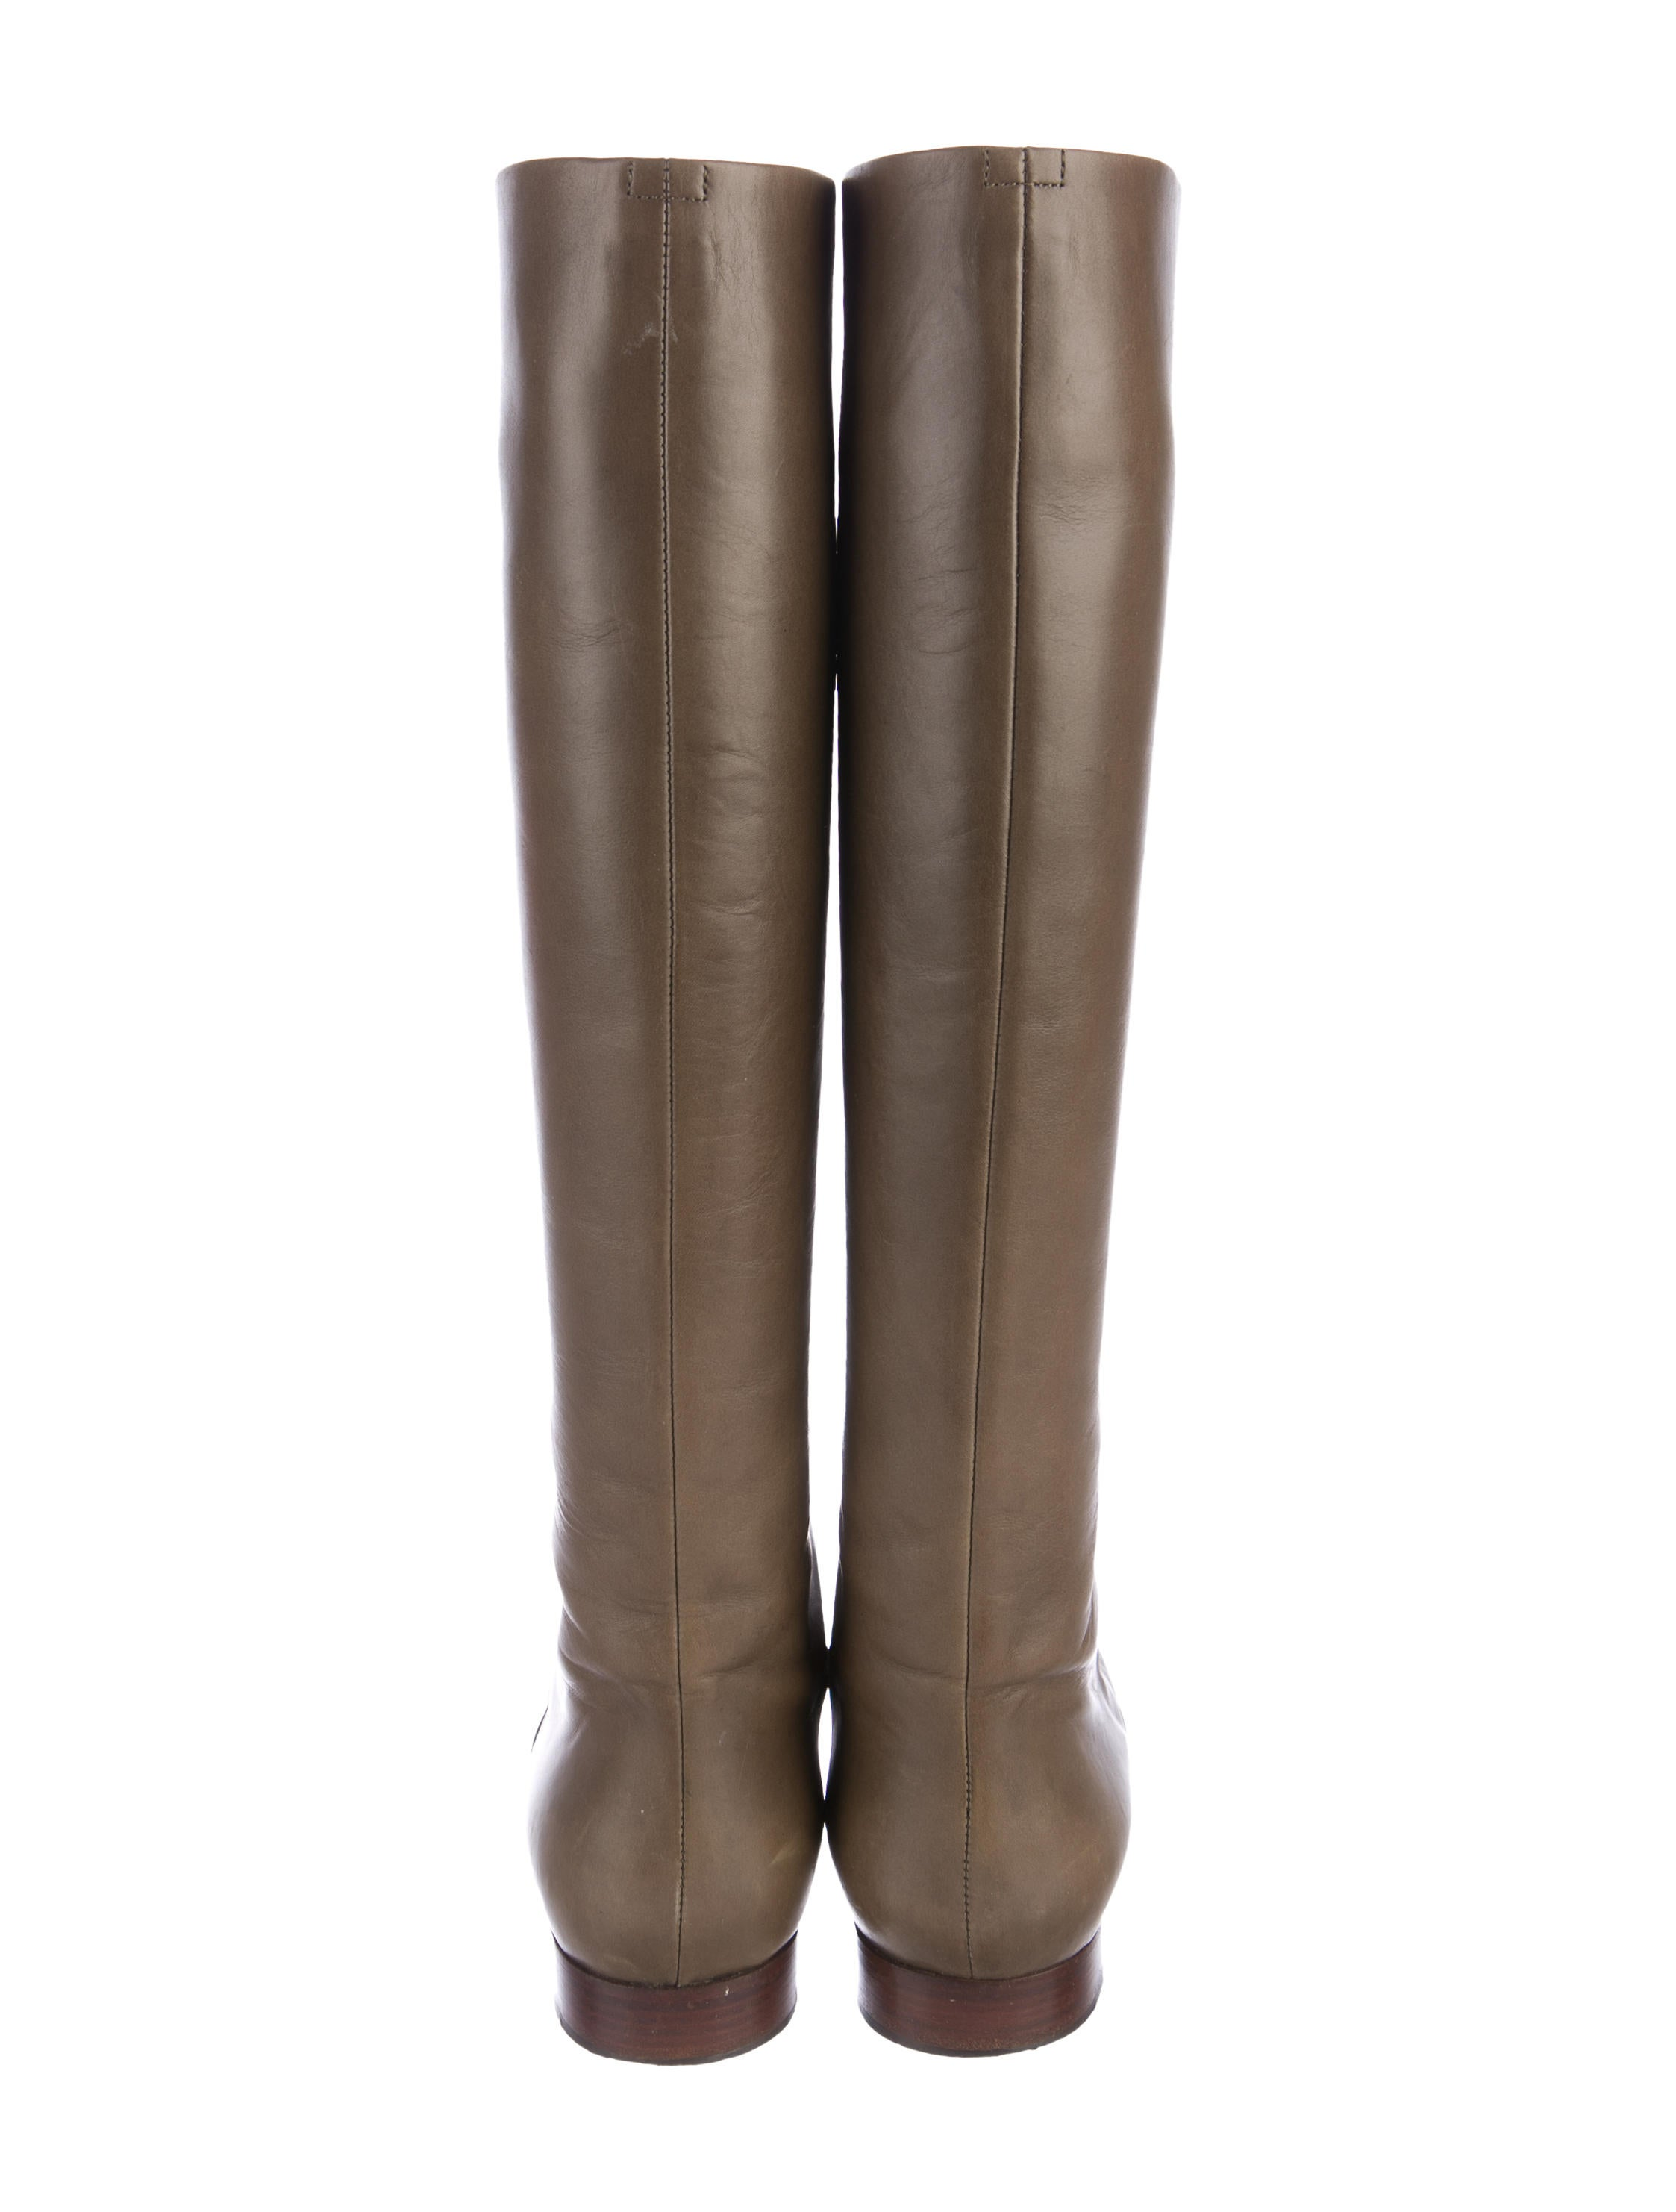 Céline Leather Round-Toe Knee-High Boots view online pay with paypal sale online jkmmu9B